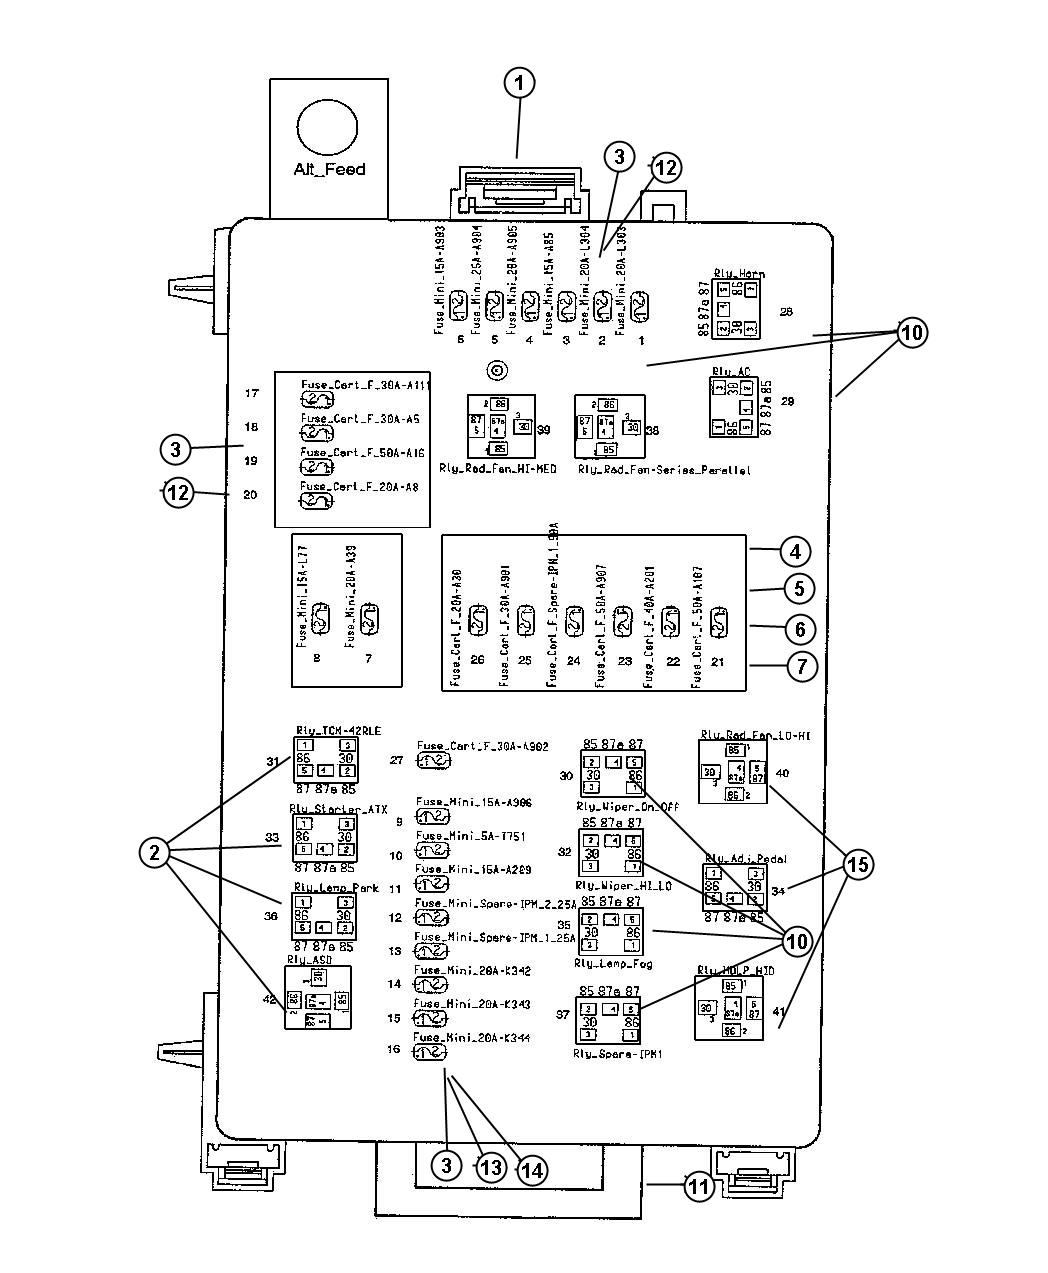 hight resolution of 2005 300c fuse diagram wiring diagram article review2005 300c fuse diagram